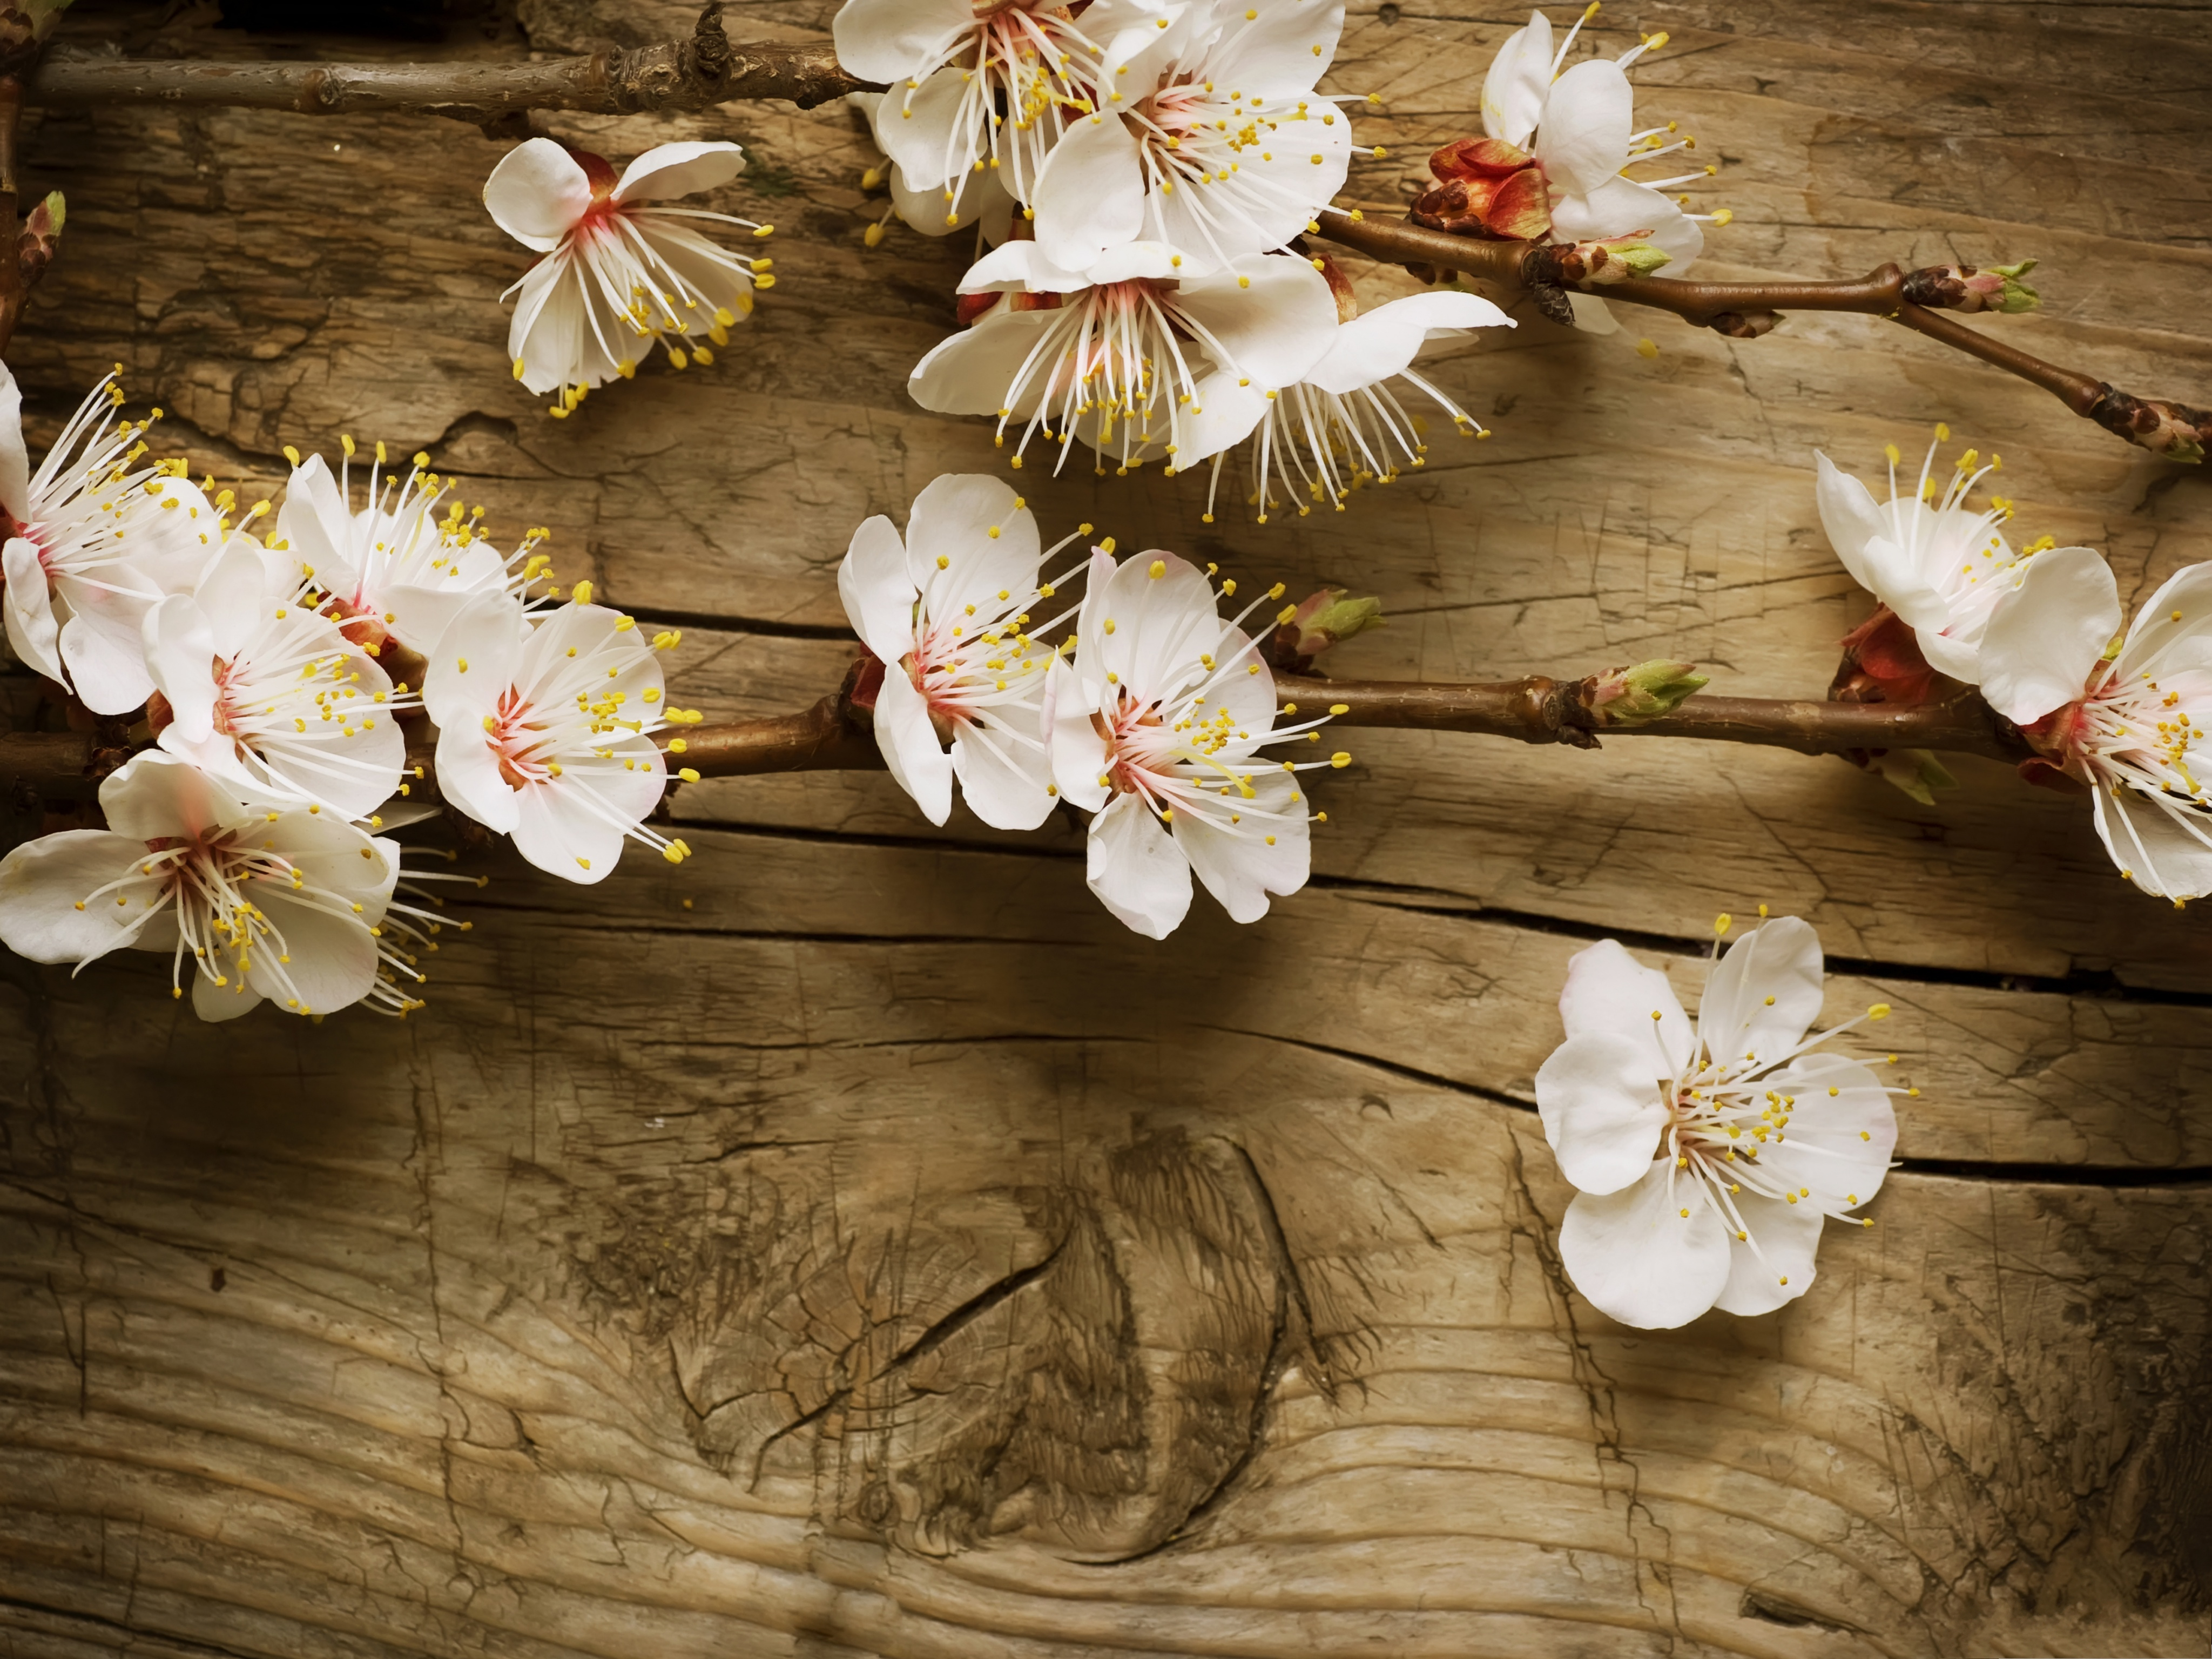 click to free download the wallpaper--Apple Flowers Image, Tiny White Flowers on Wood, Amazing Scenery 4096X3072 free wallpaper download